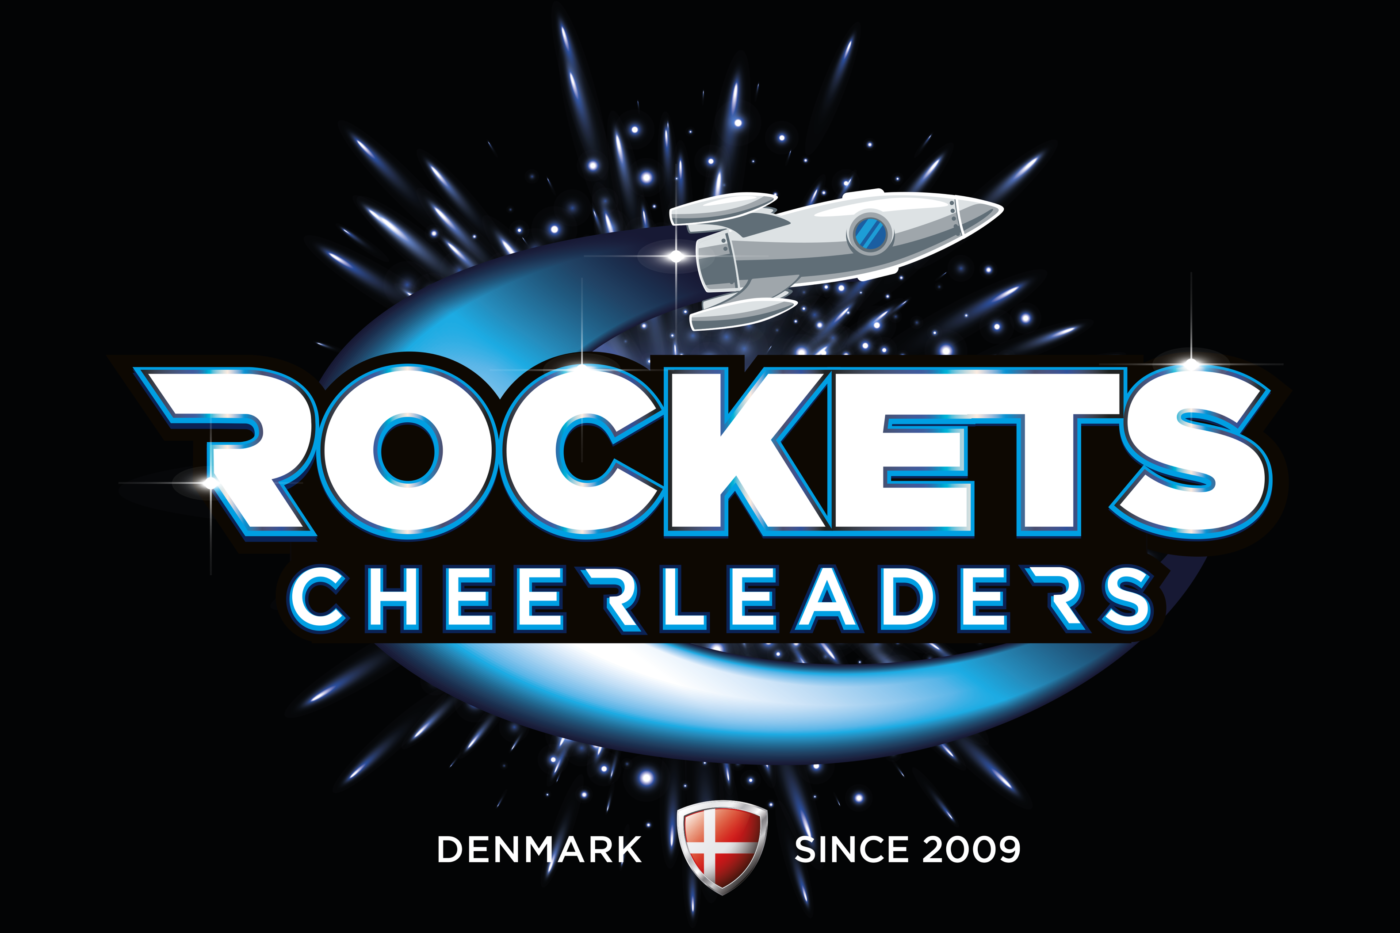 Rockets Cheerleaders logo